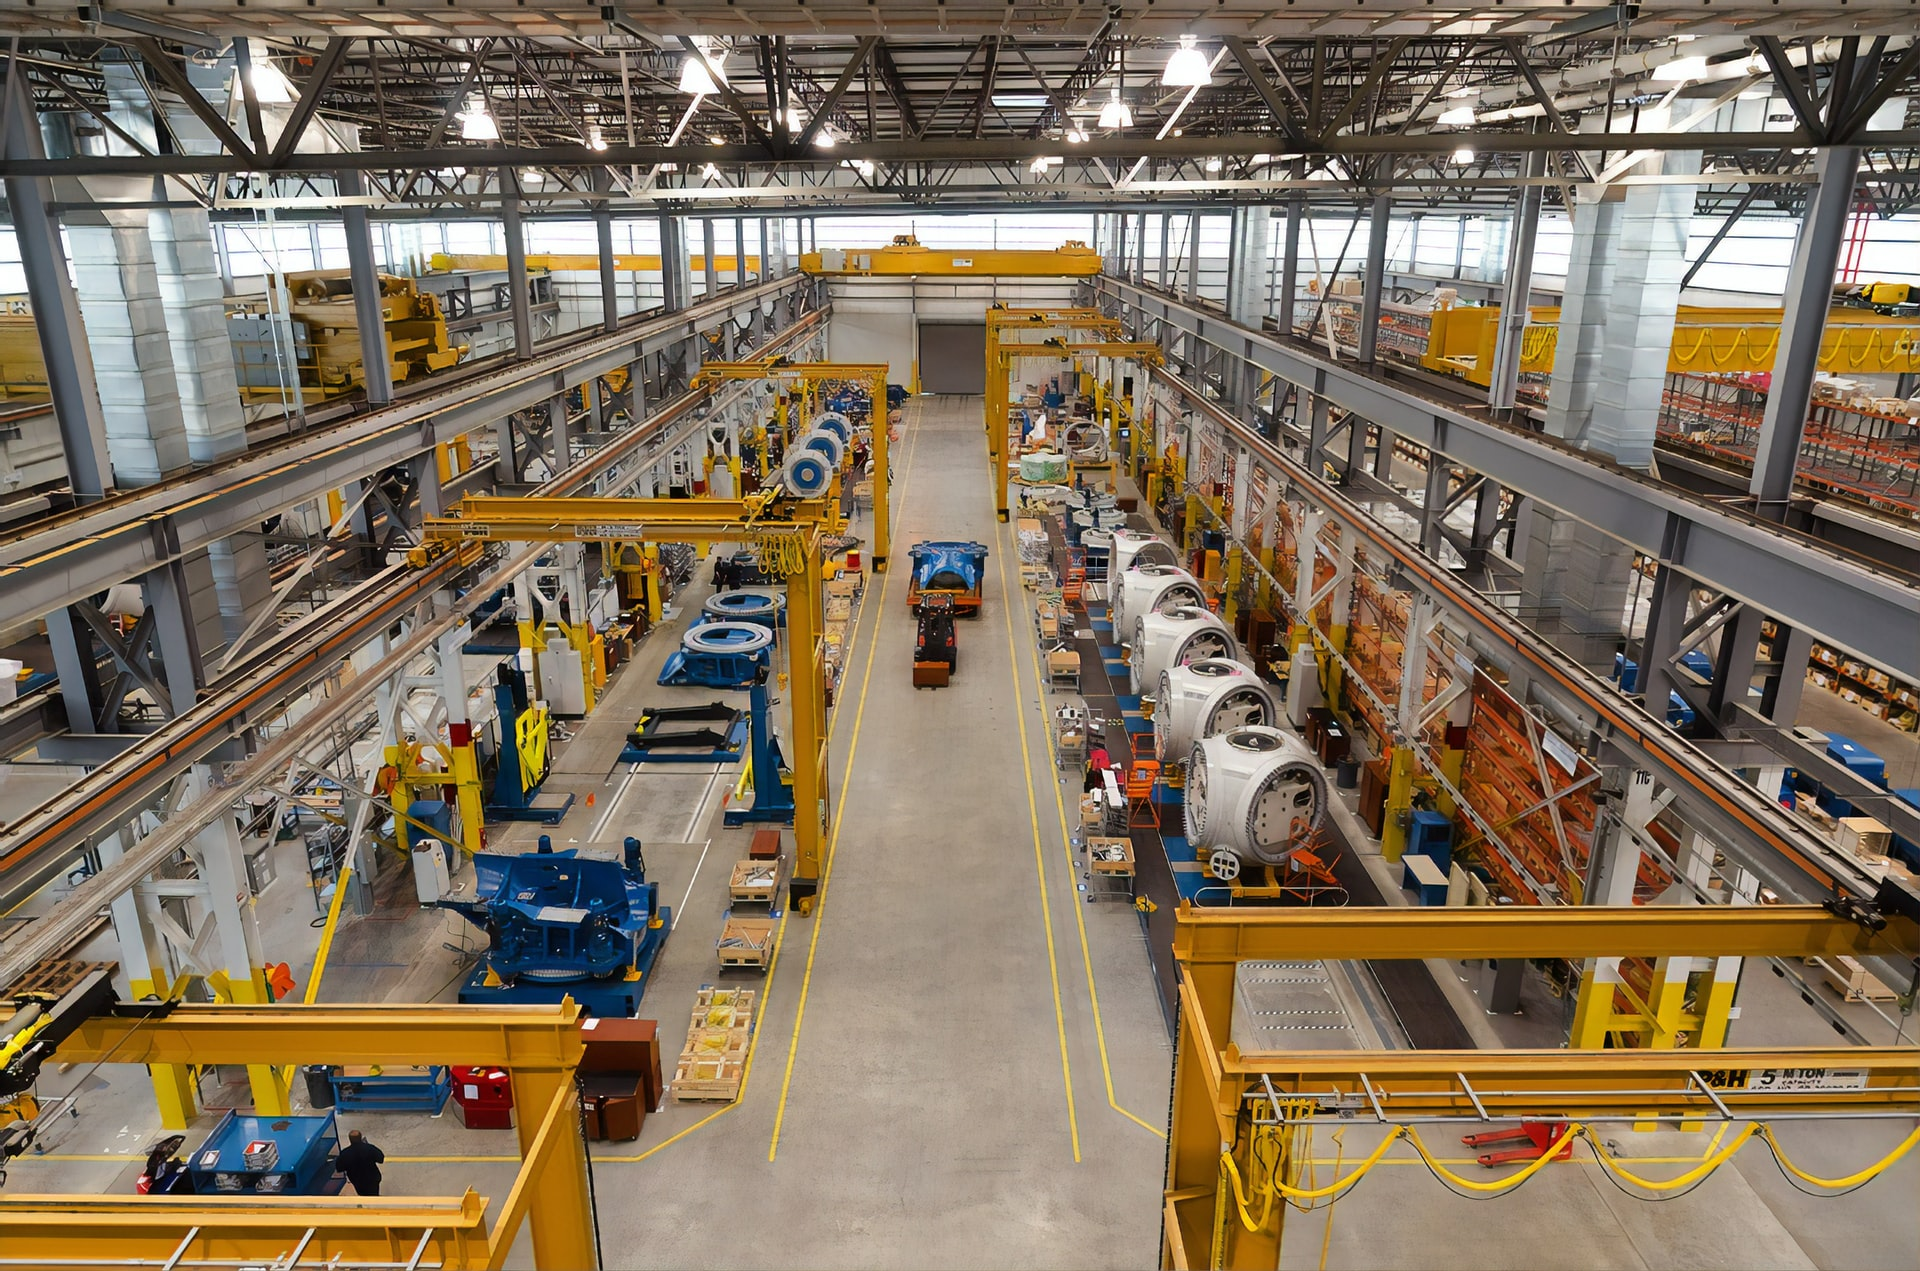 Photo of a large, multistory manufacturing plant taken from the ceiling